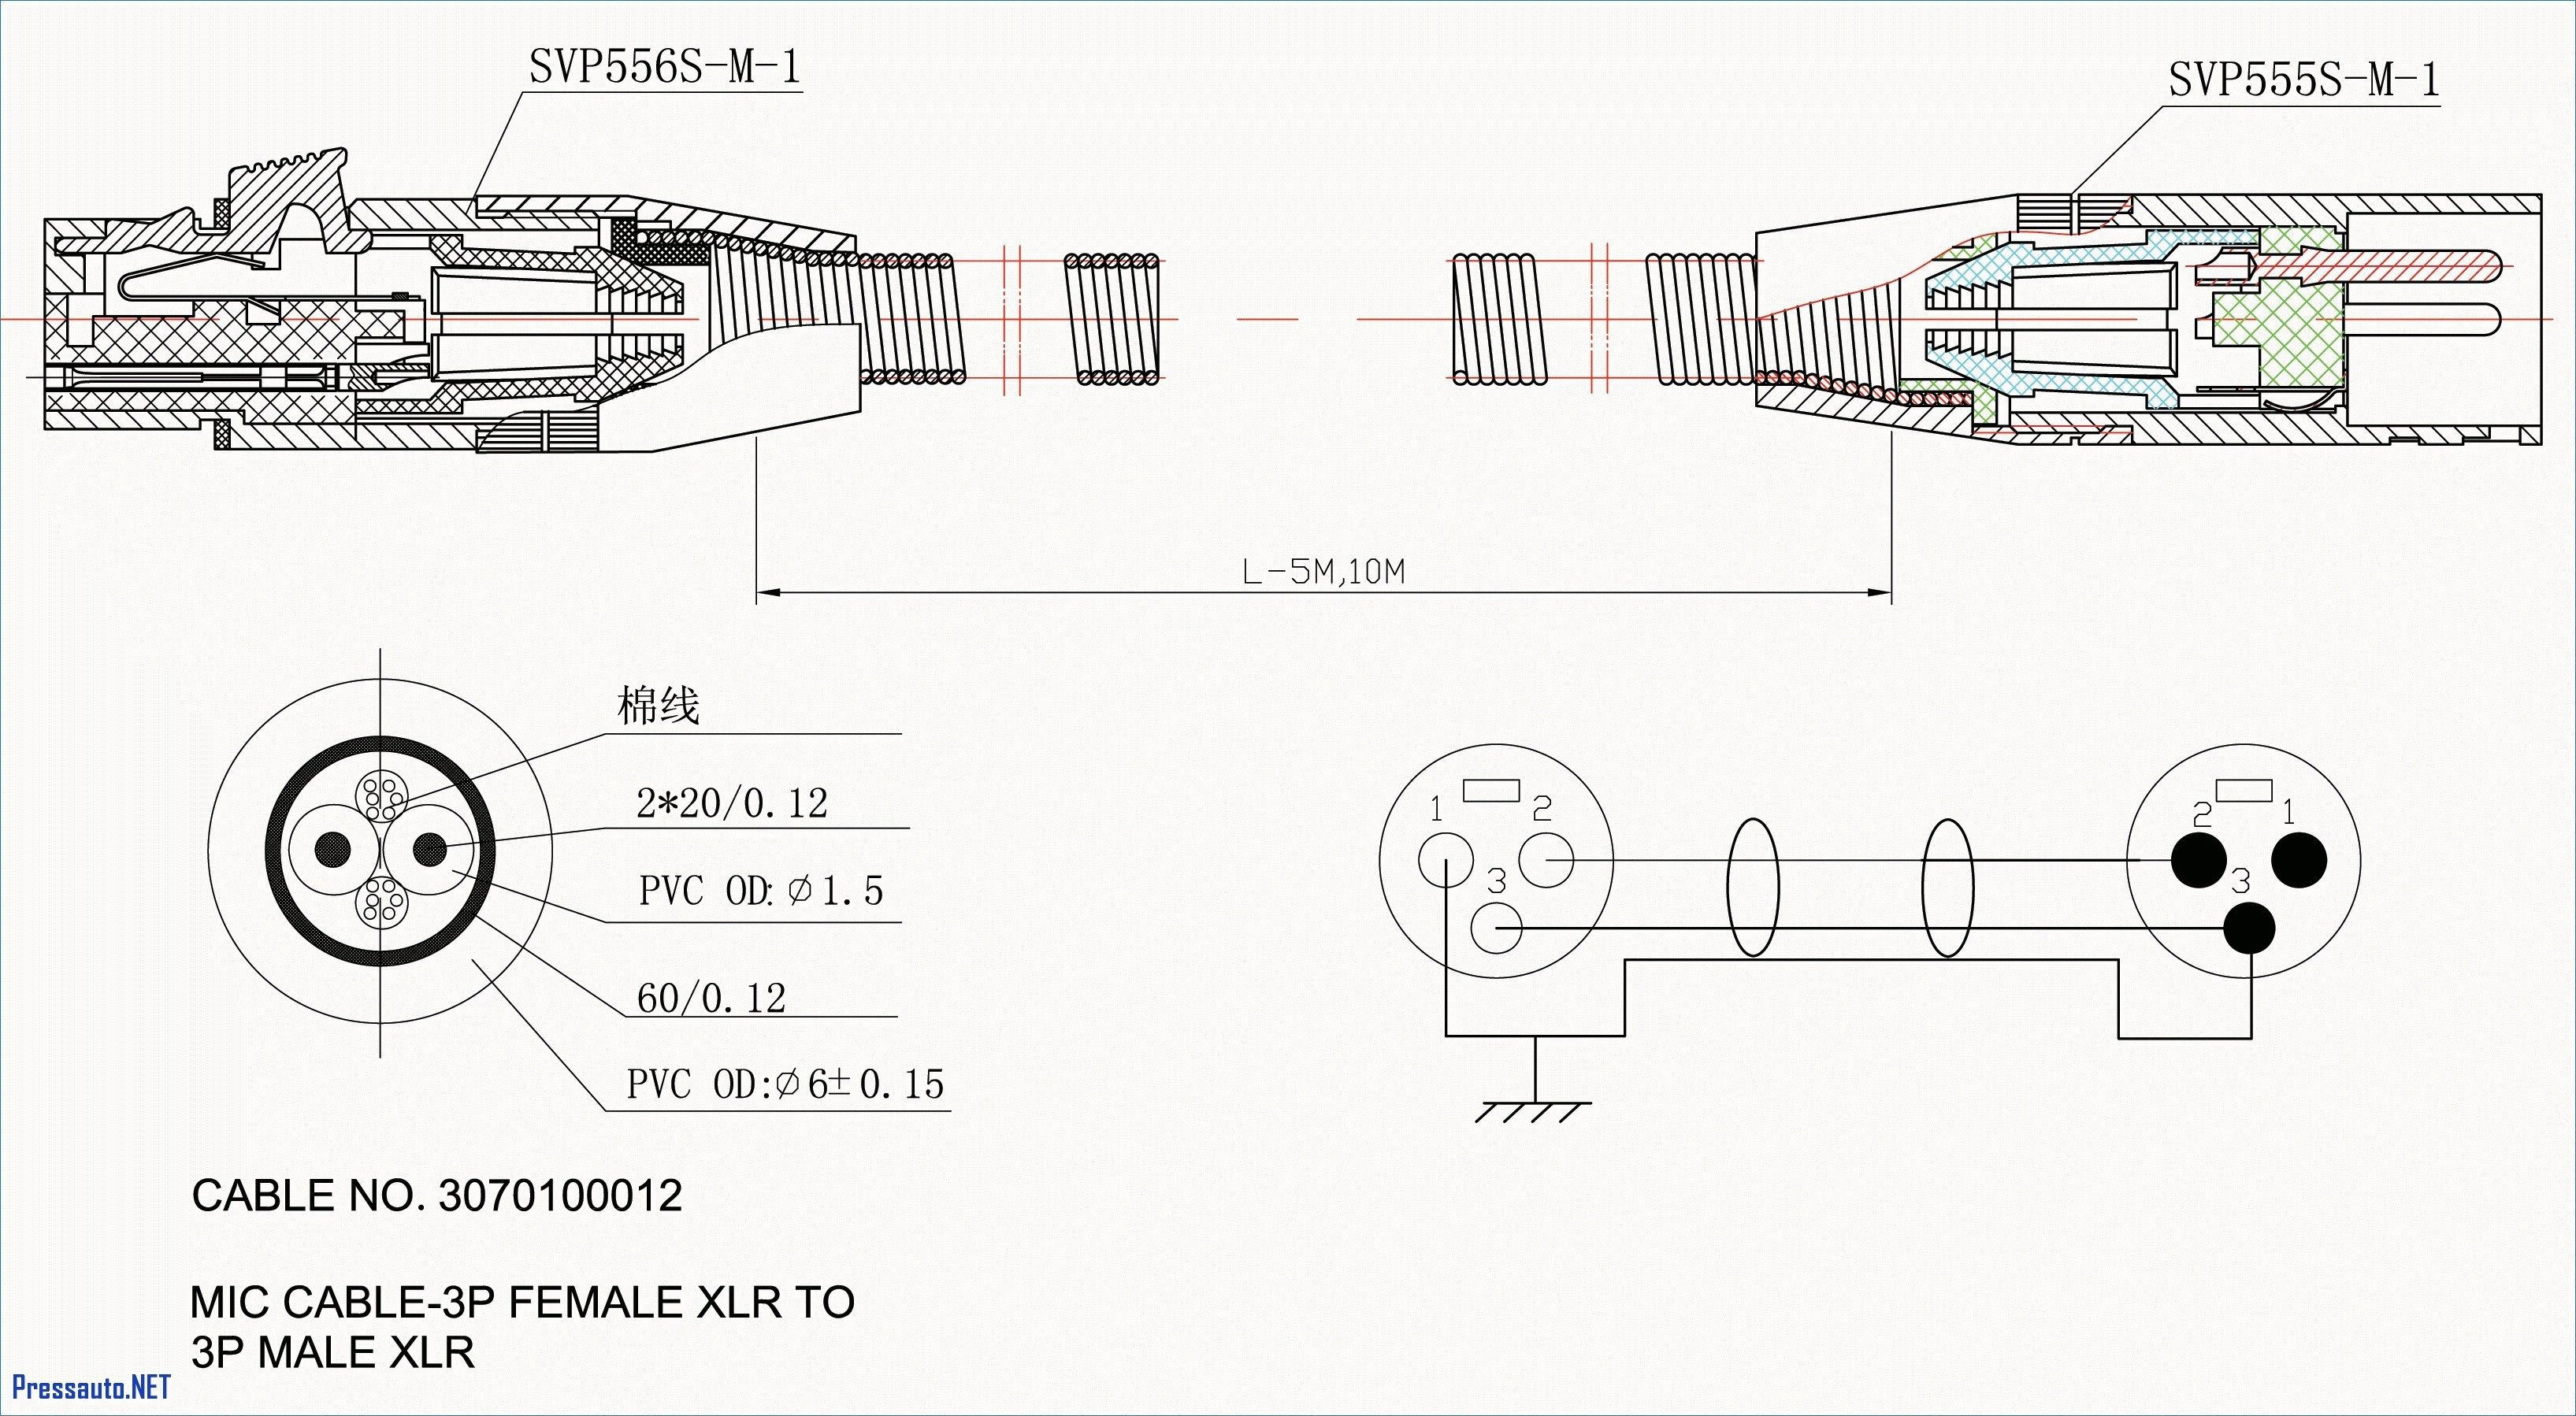 7 Wire Trailer Plug Diagram 7 Pin Trailer Wiring Diagram Of 7 Wire Trailer Plug Diagram 7 Wire thermostat Wiring Diagram Sample